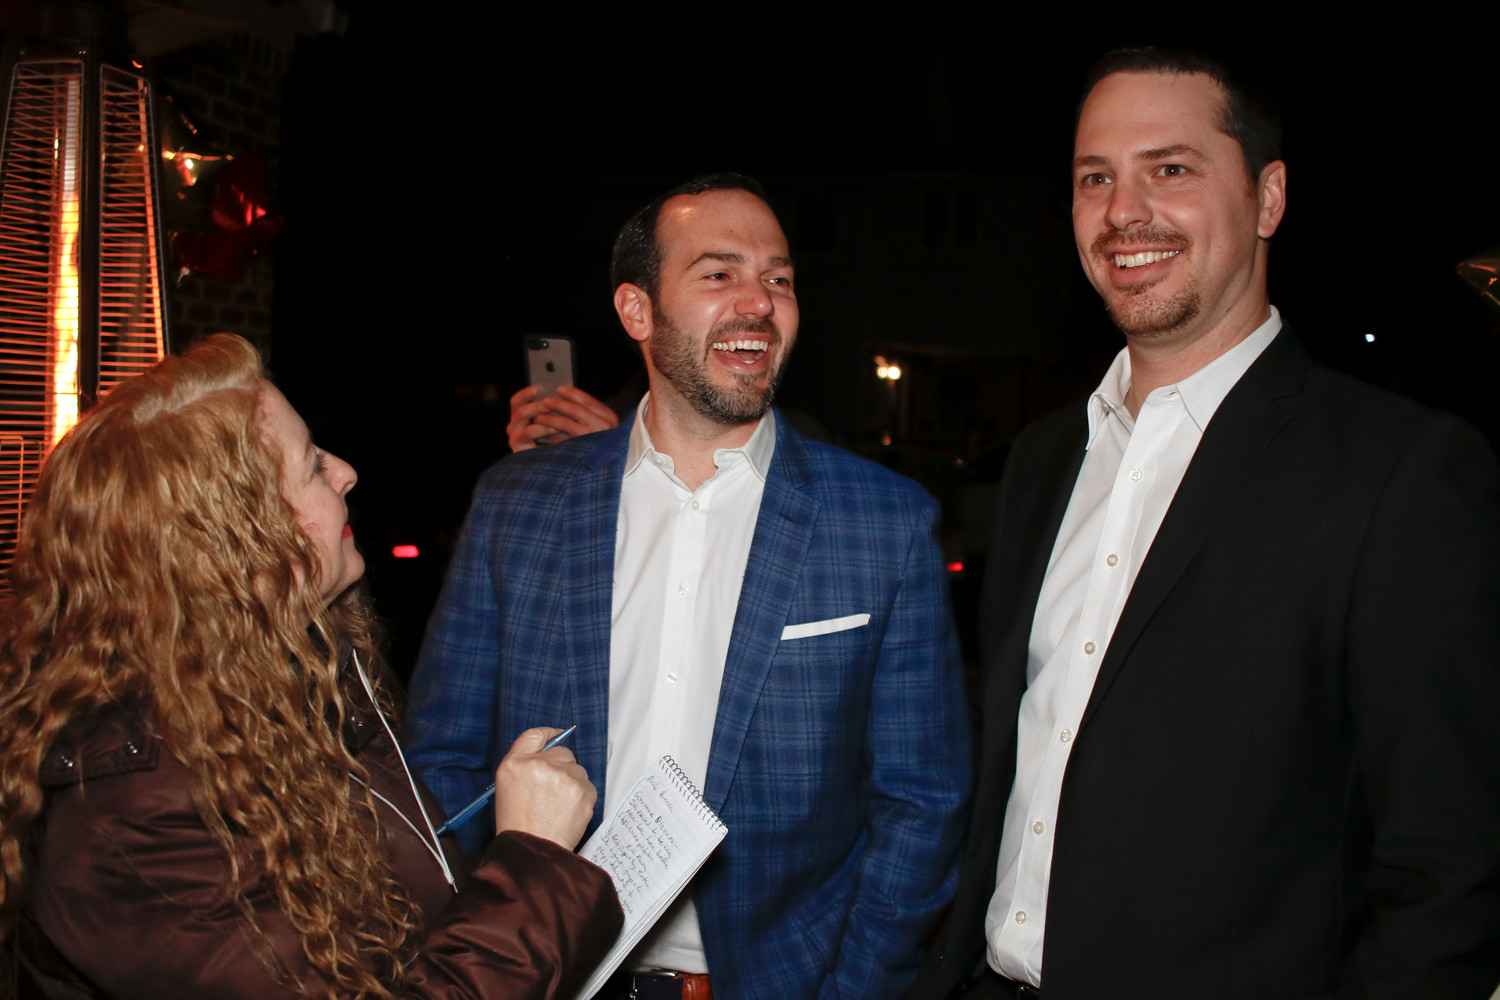 The paparazzi were all over the guests including Gabe  Haim and Ryan Schlotter who were interviewed by Laura Lane of the Oyster Bay Guardian.